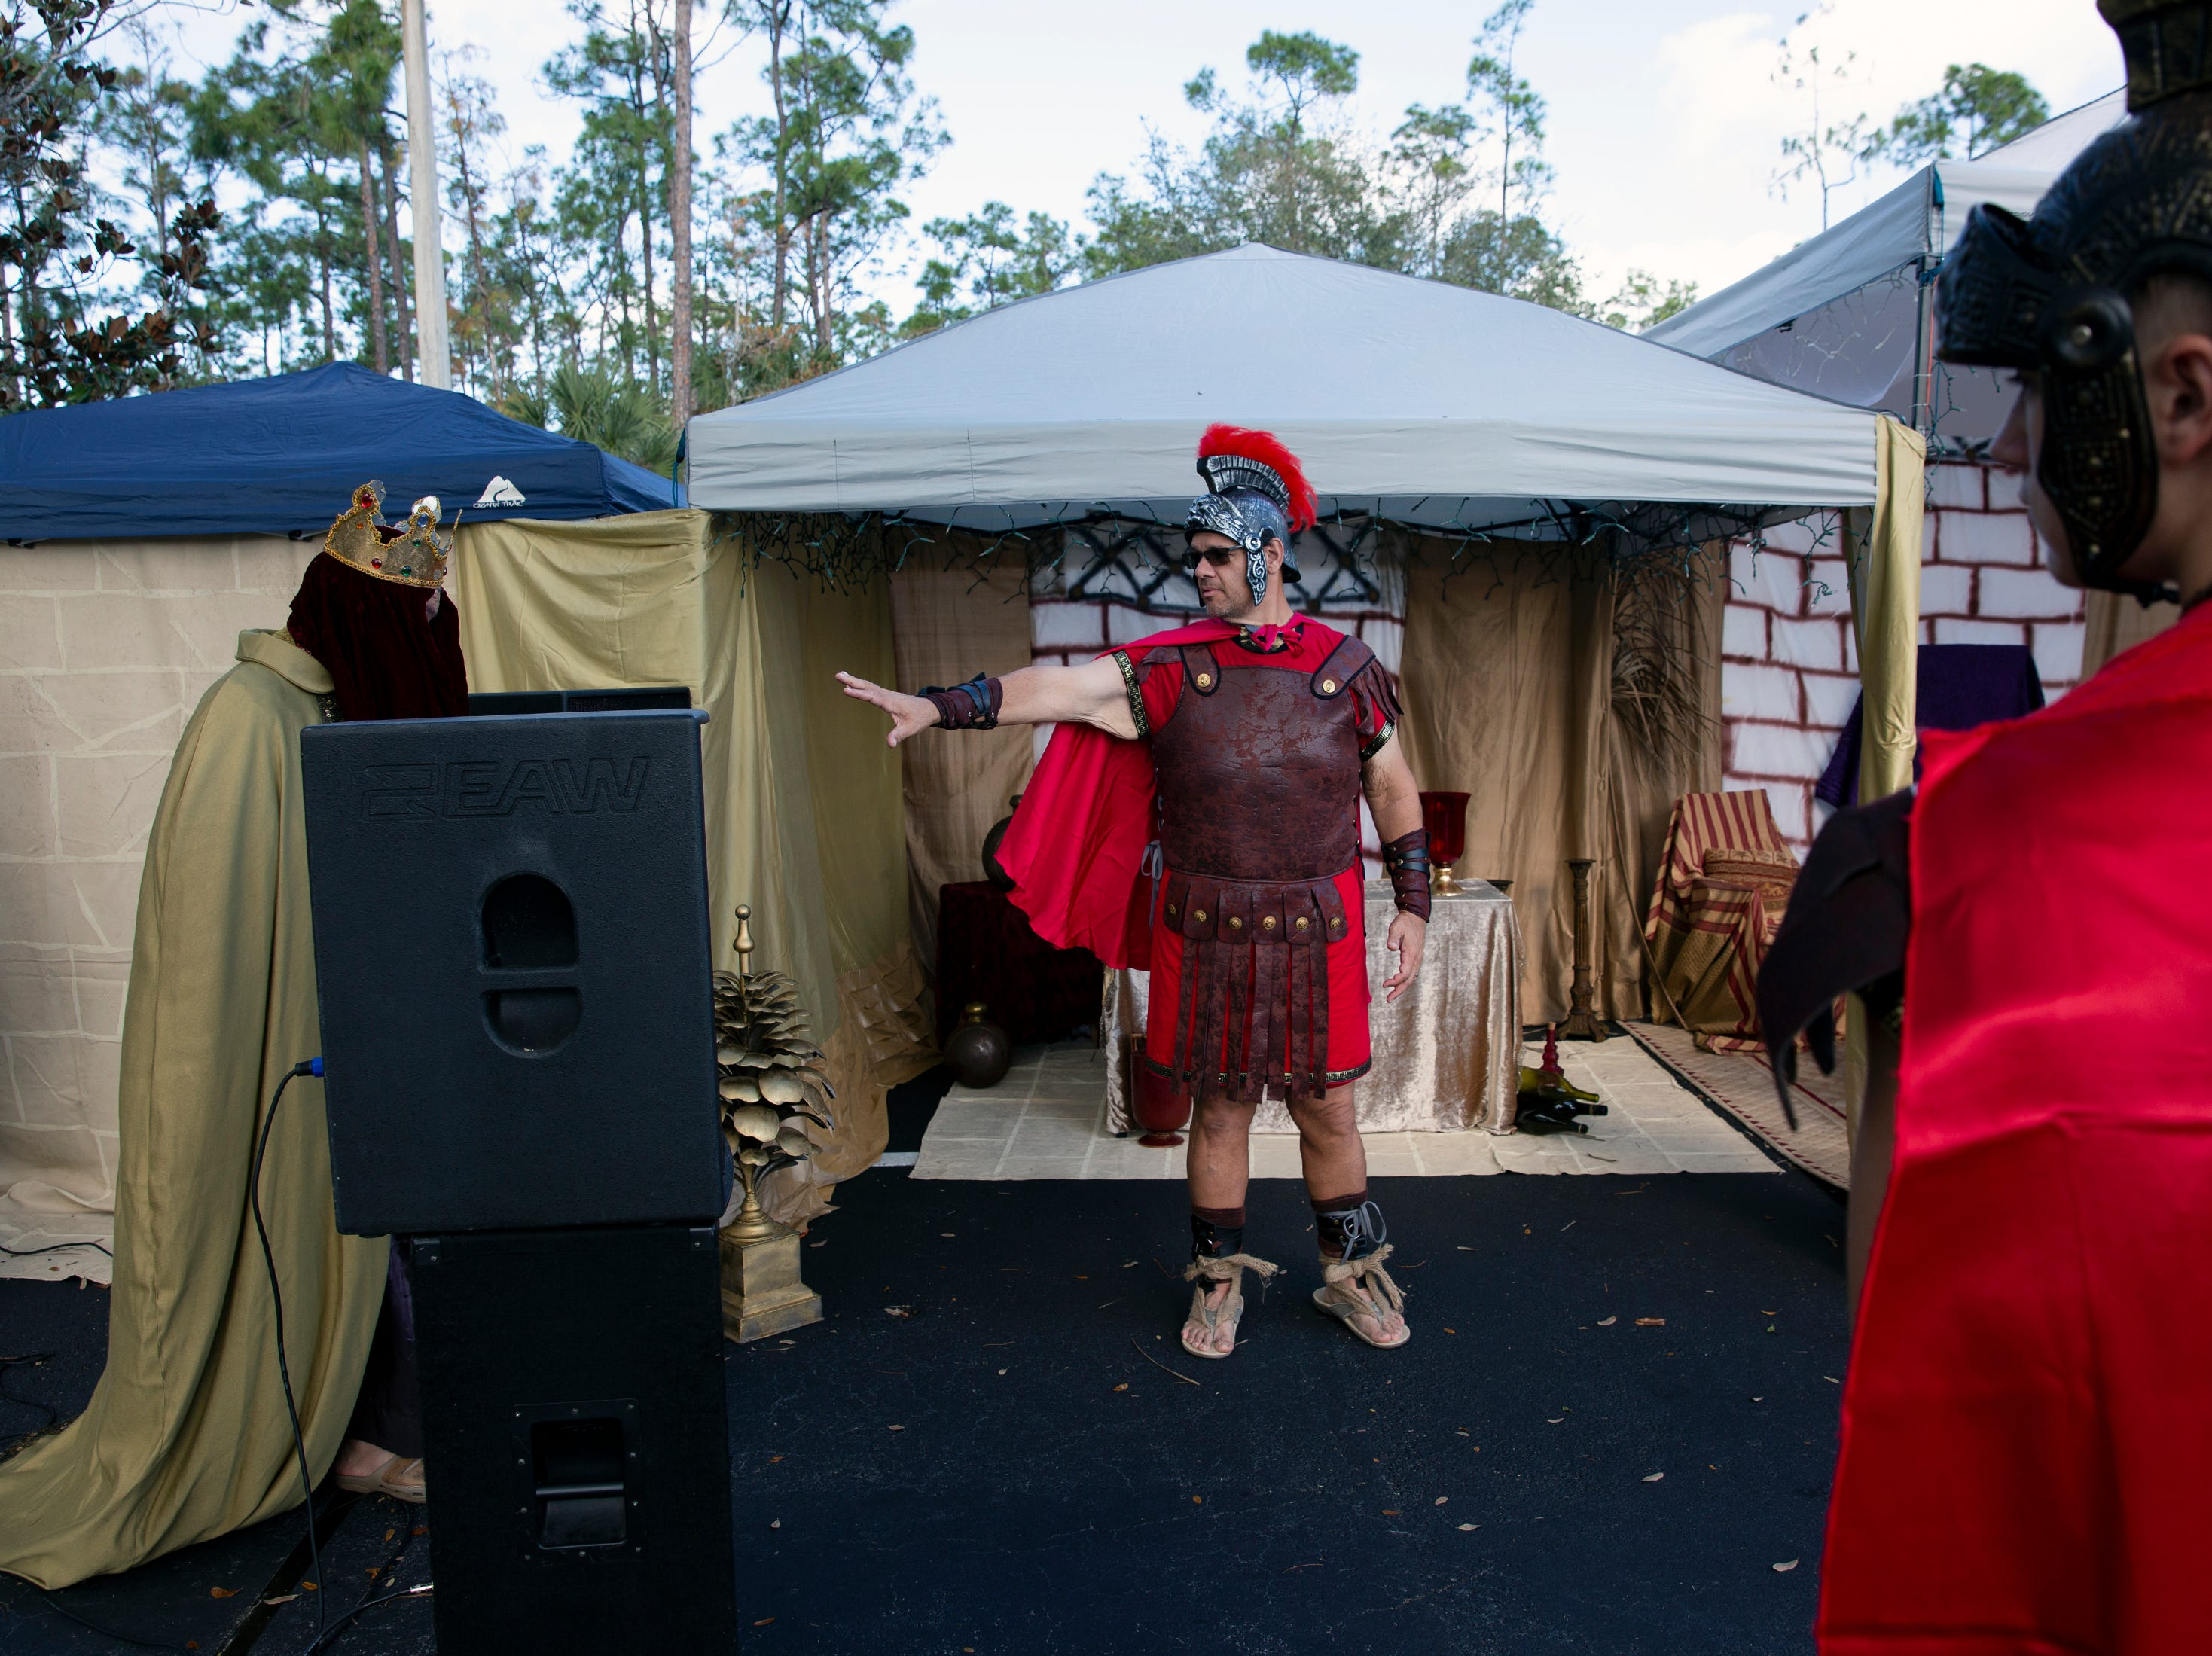 A Roman centurion played by Jeff Vespos acts out a scene during a live nativity performance at St. Agnes Catholic Church on Sunday, Dec. 16, 2018, in East Naples.